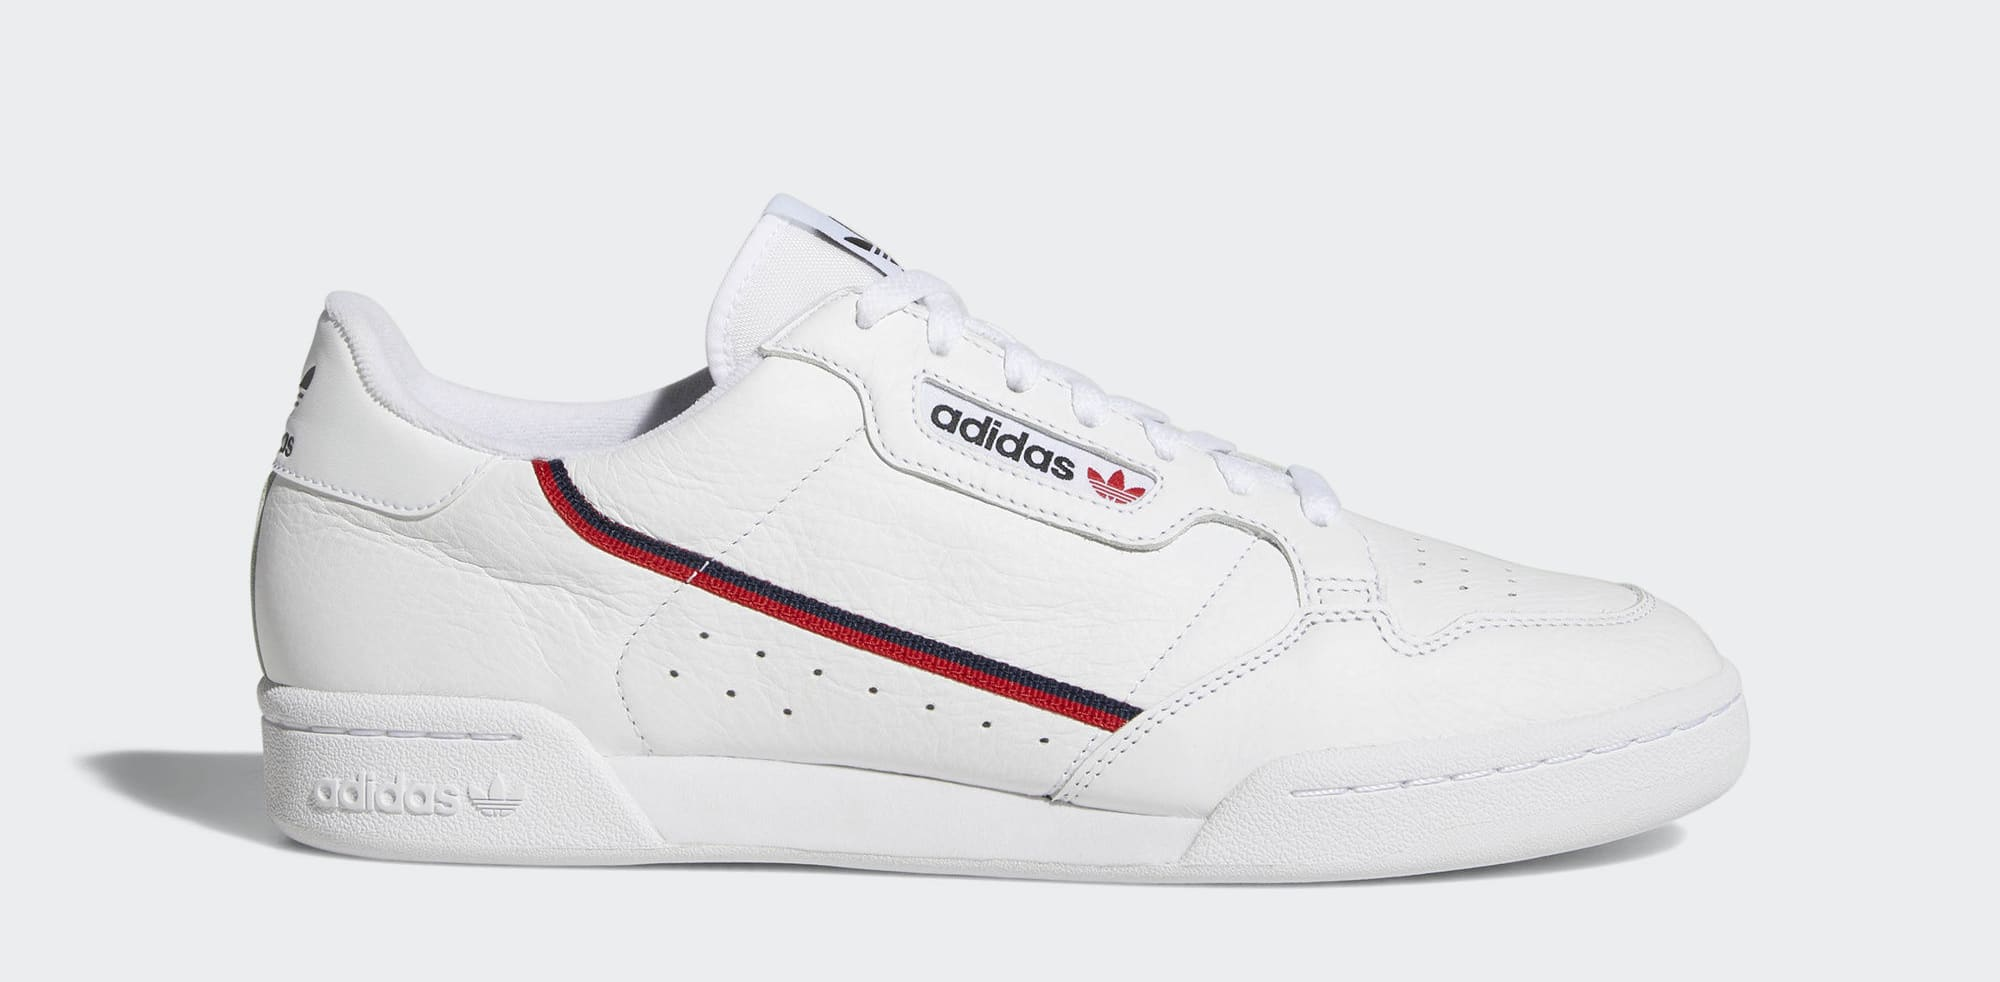 adidas Continental 80's Sneakers In B41674